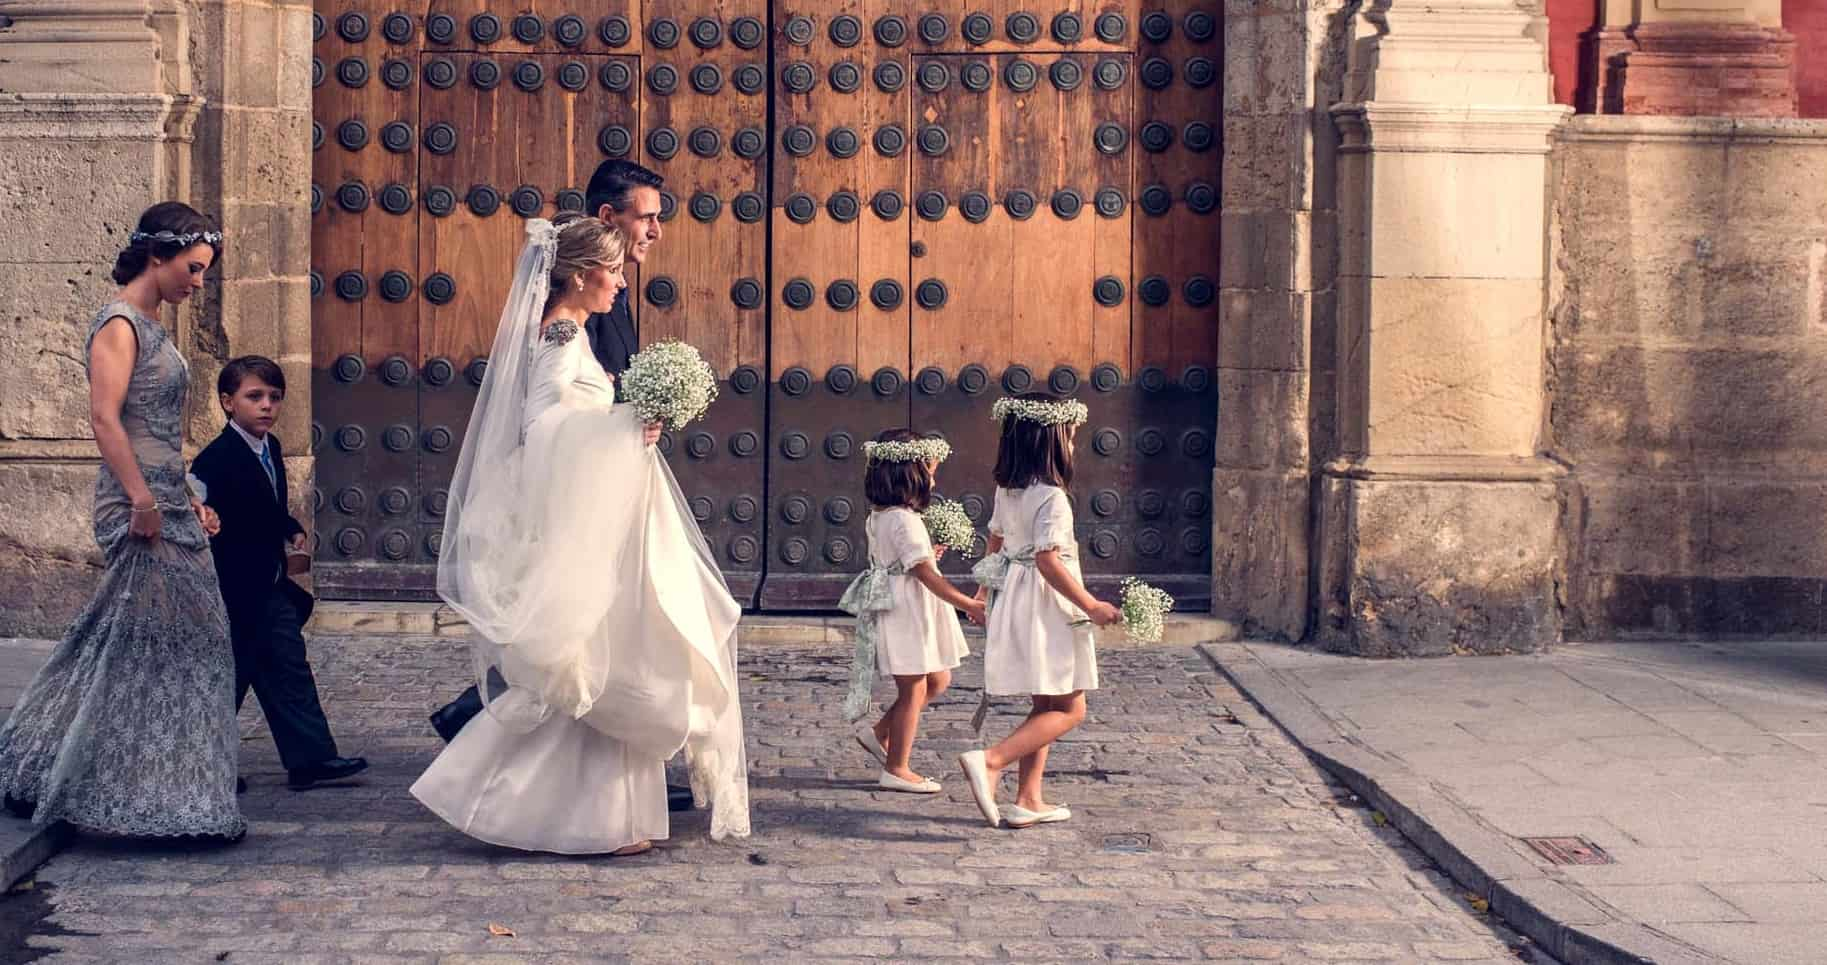 ROMANTIC WEDDING IN SEVILLE